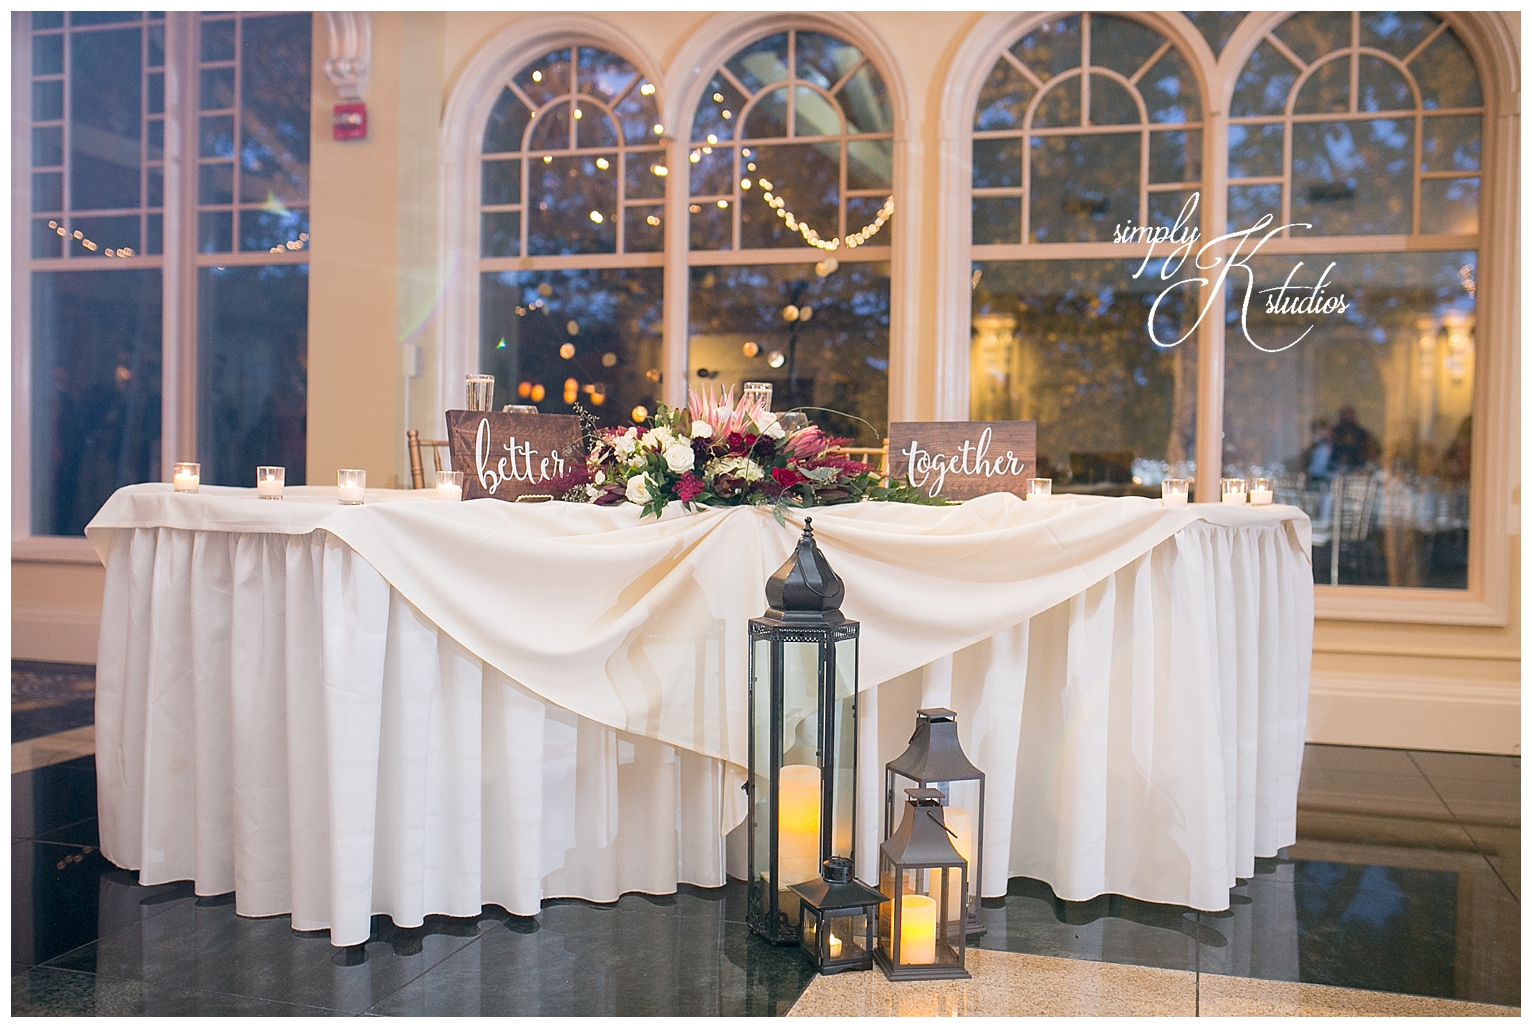 Wedding Reception in a Ballroom.jpg